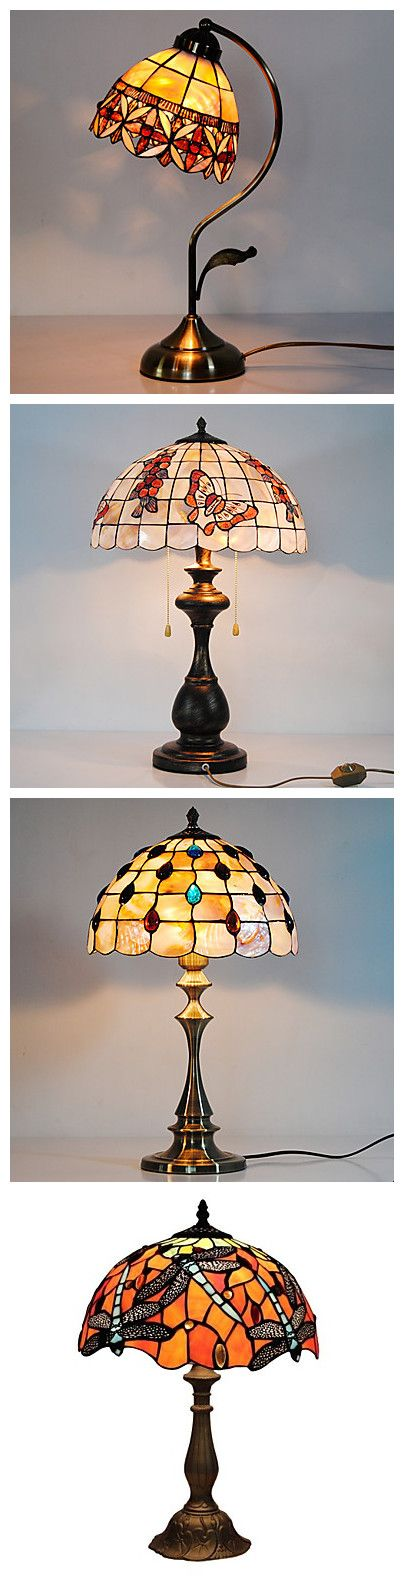 Check out the lightinthebox pinterest for great home pieces at amazing prices cheap lampstiffany glasslamp lightstained